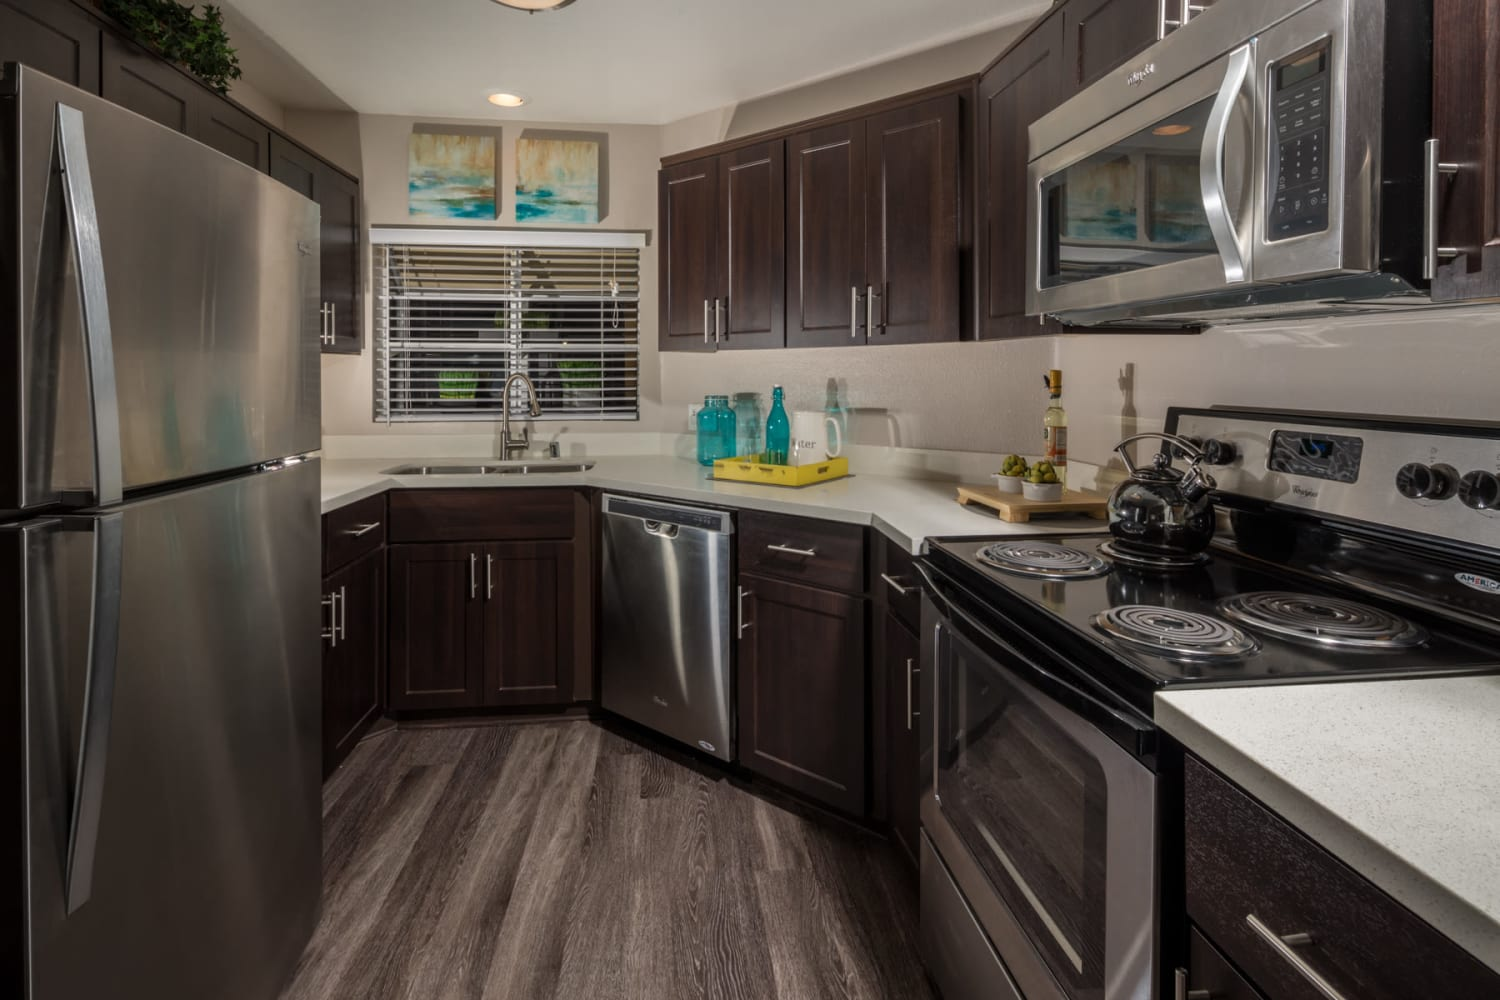 Spacious kitchen area at Sierra Heights Apartments in Rancho Cucamonga, California